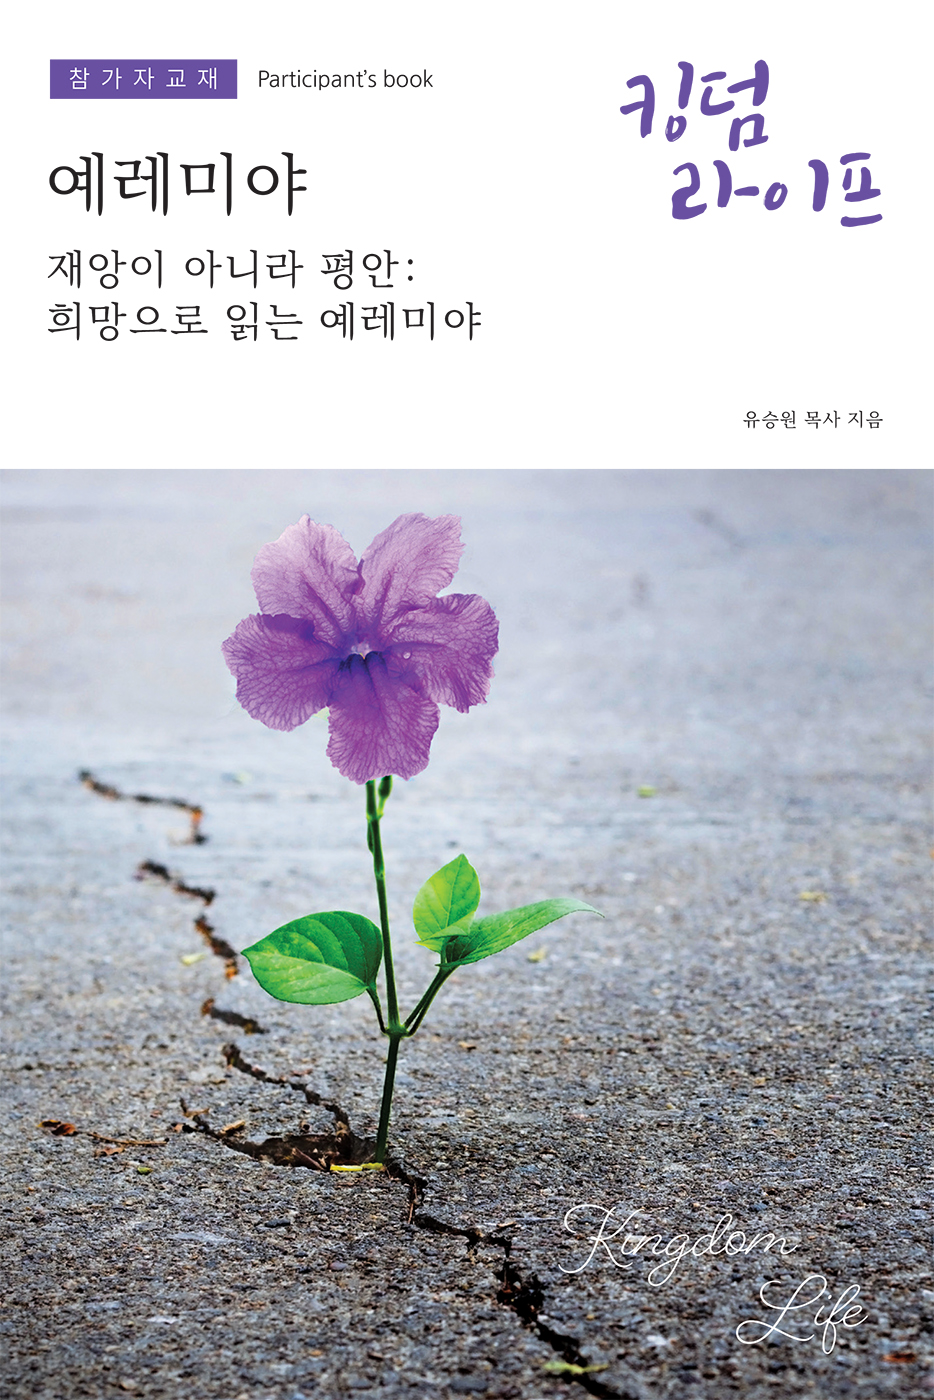 Korean Kingdom Life, Participant's Book